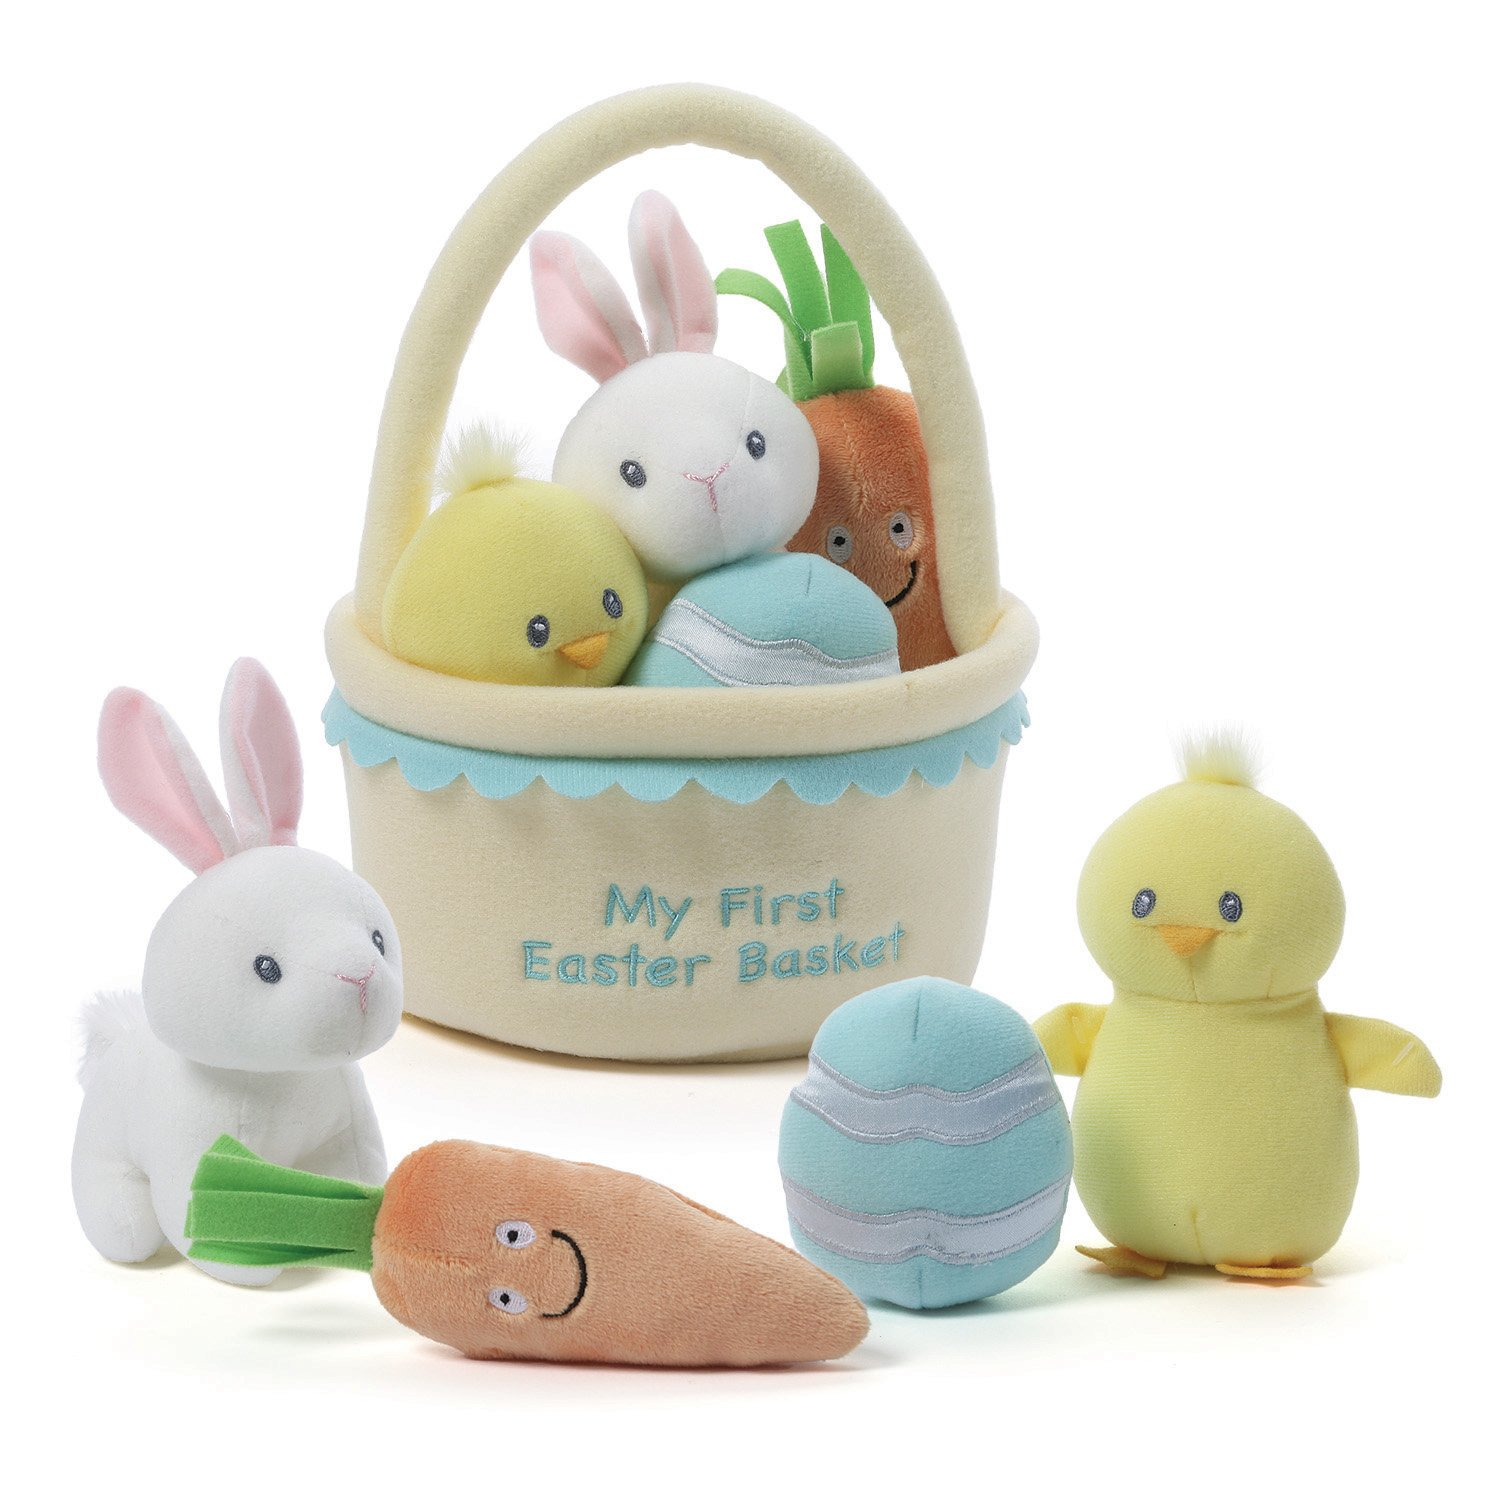 Amazon baby gund my first easter basket playset stuffed plush amazon baby gund my first easter basket playset stuffed plush 5 pieces toys games negle Gallery